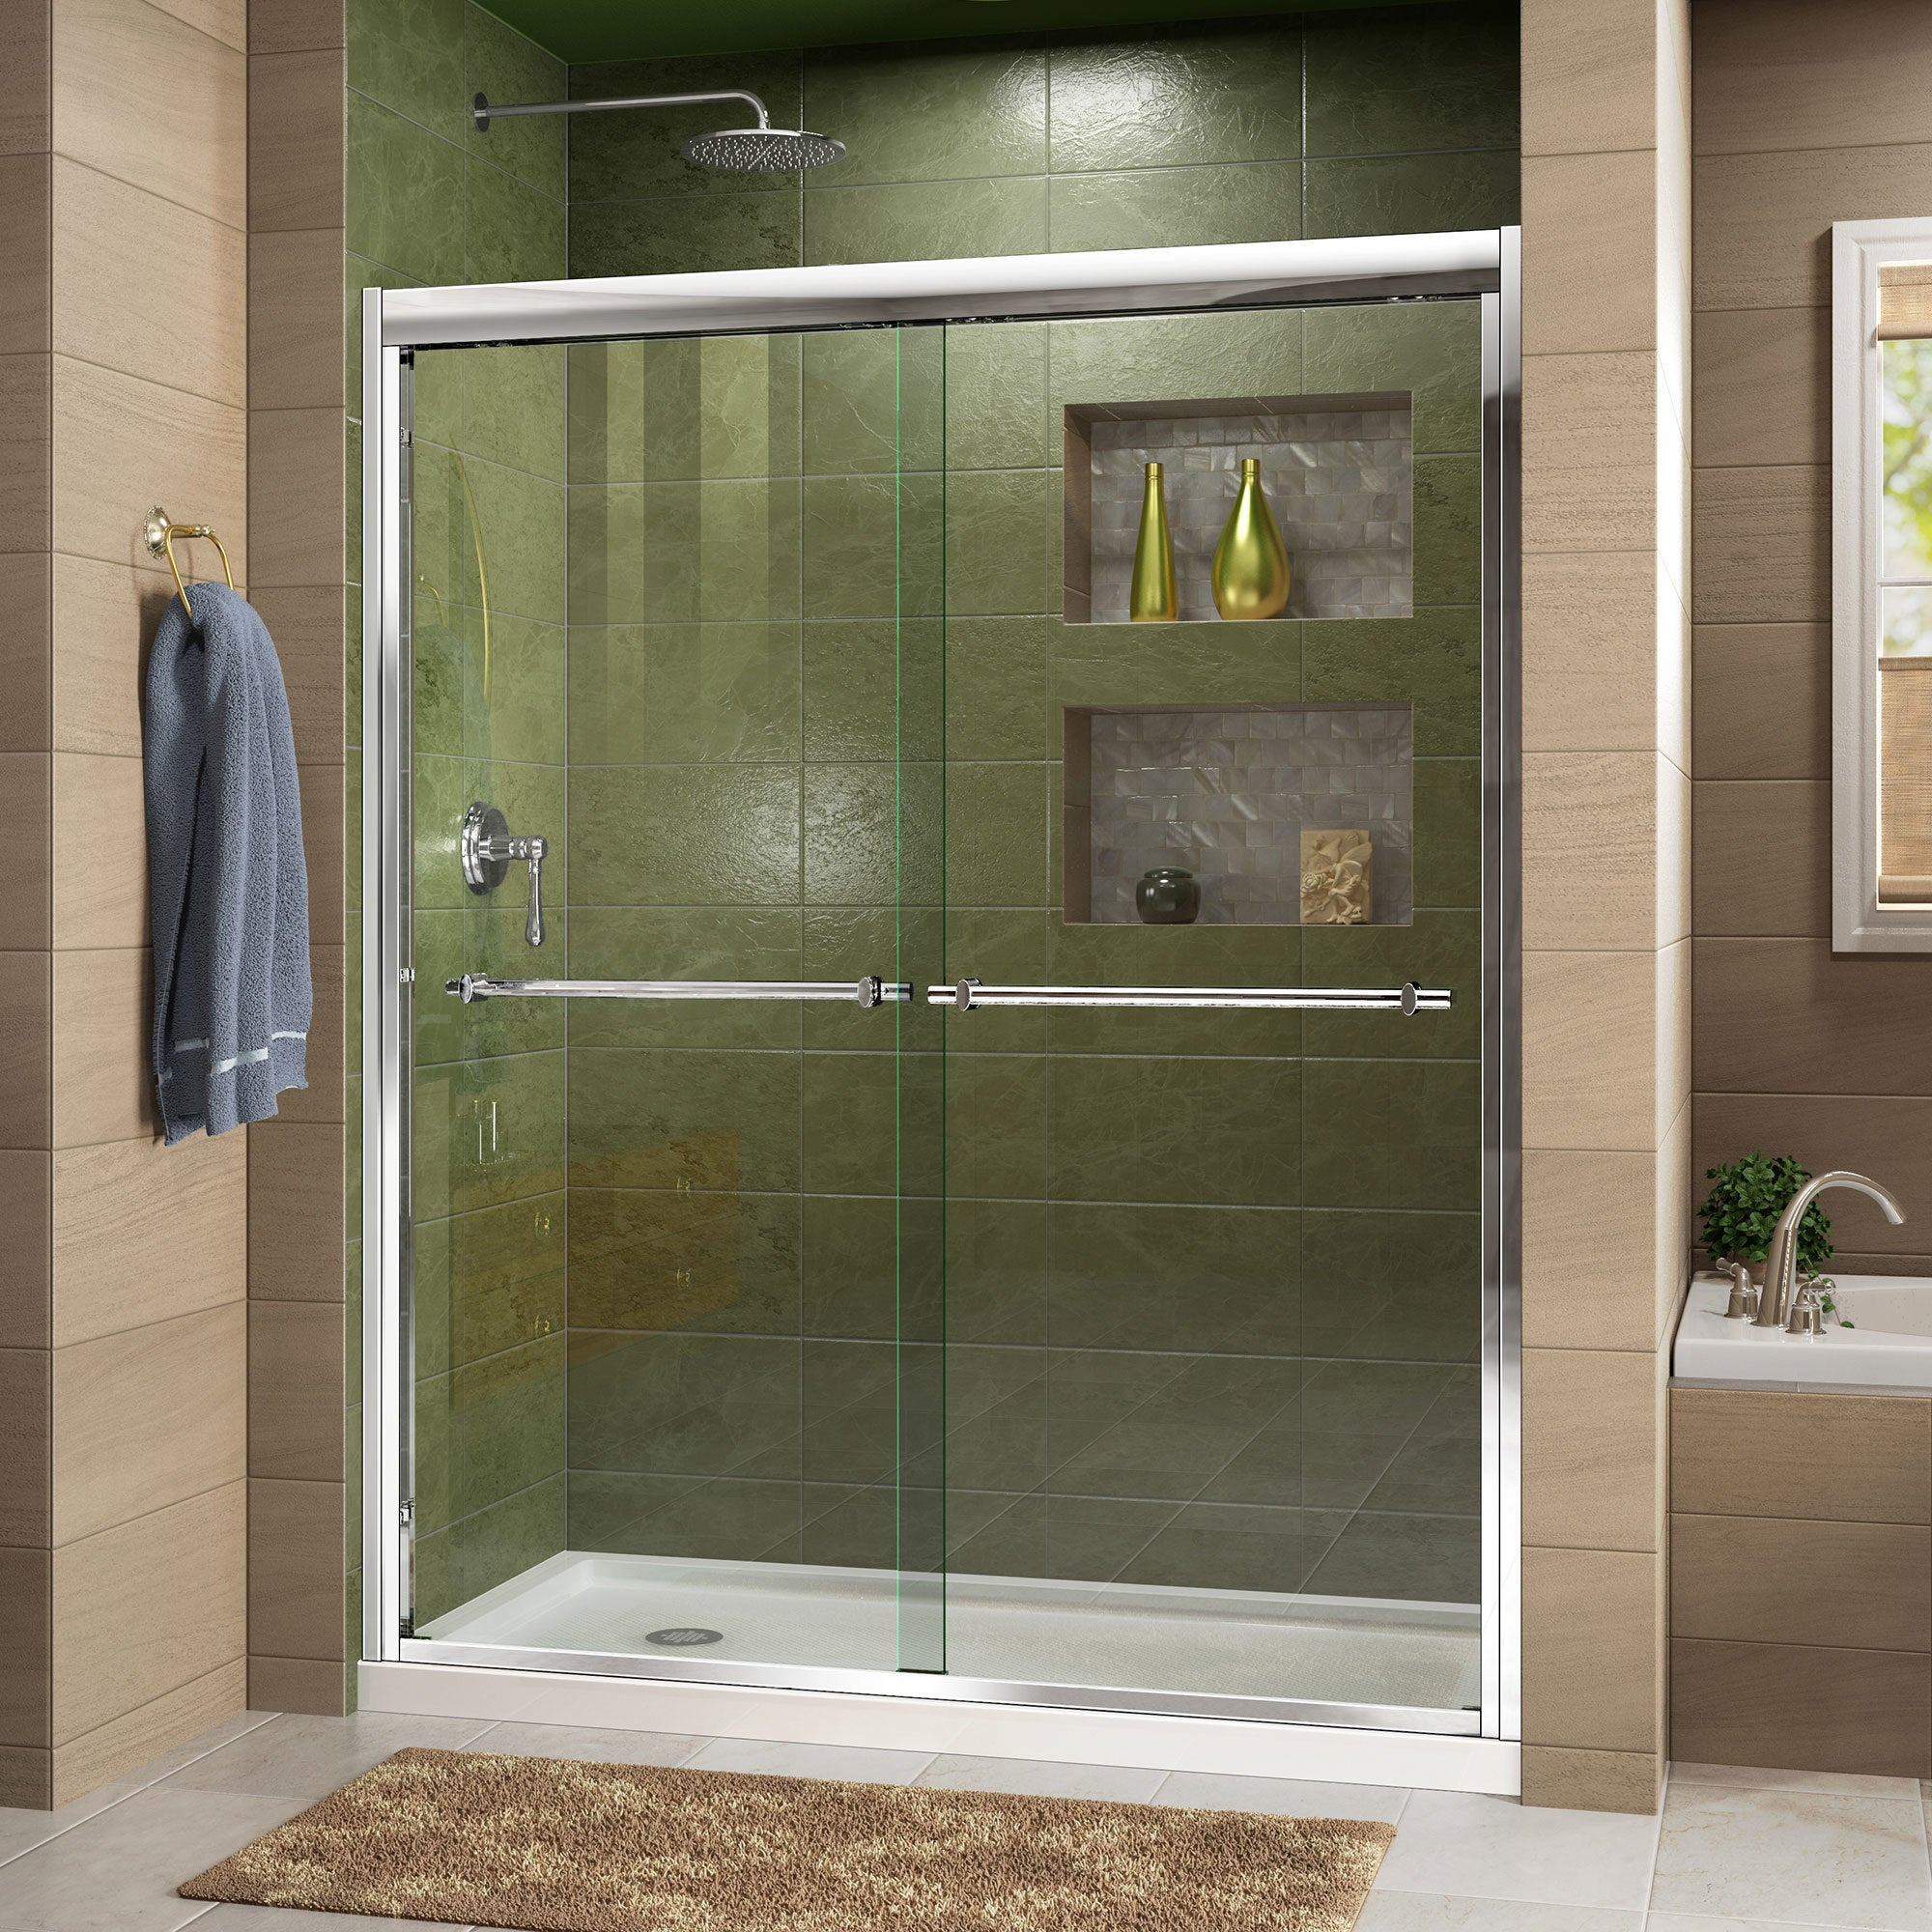 installation nashuahistory people for variations doors shower the of sliding modern track without bottom